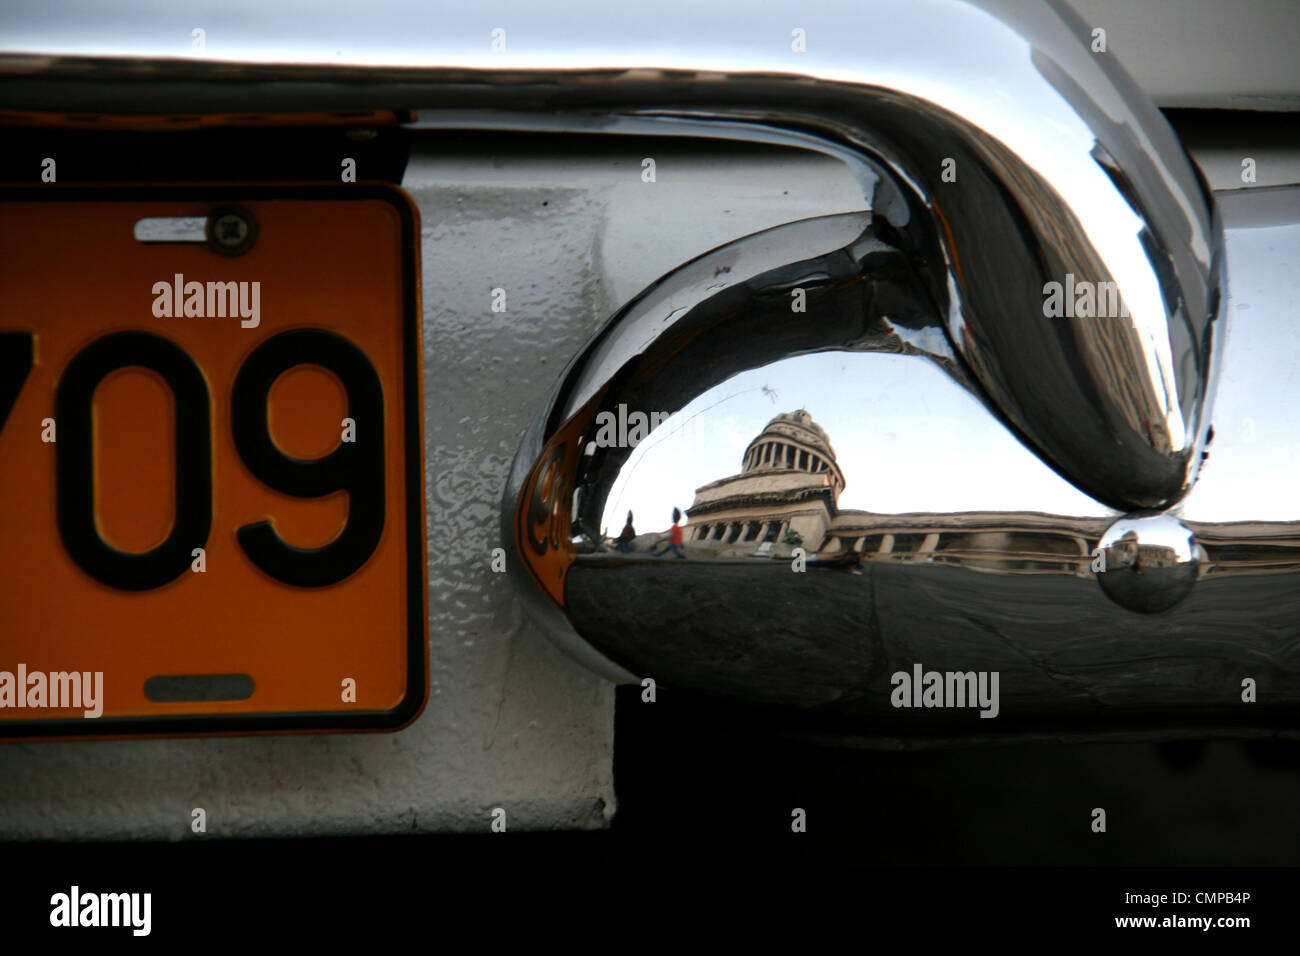 A close up of a vintage car number/registration plate in Havana ...